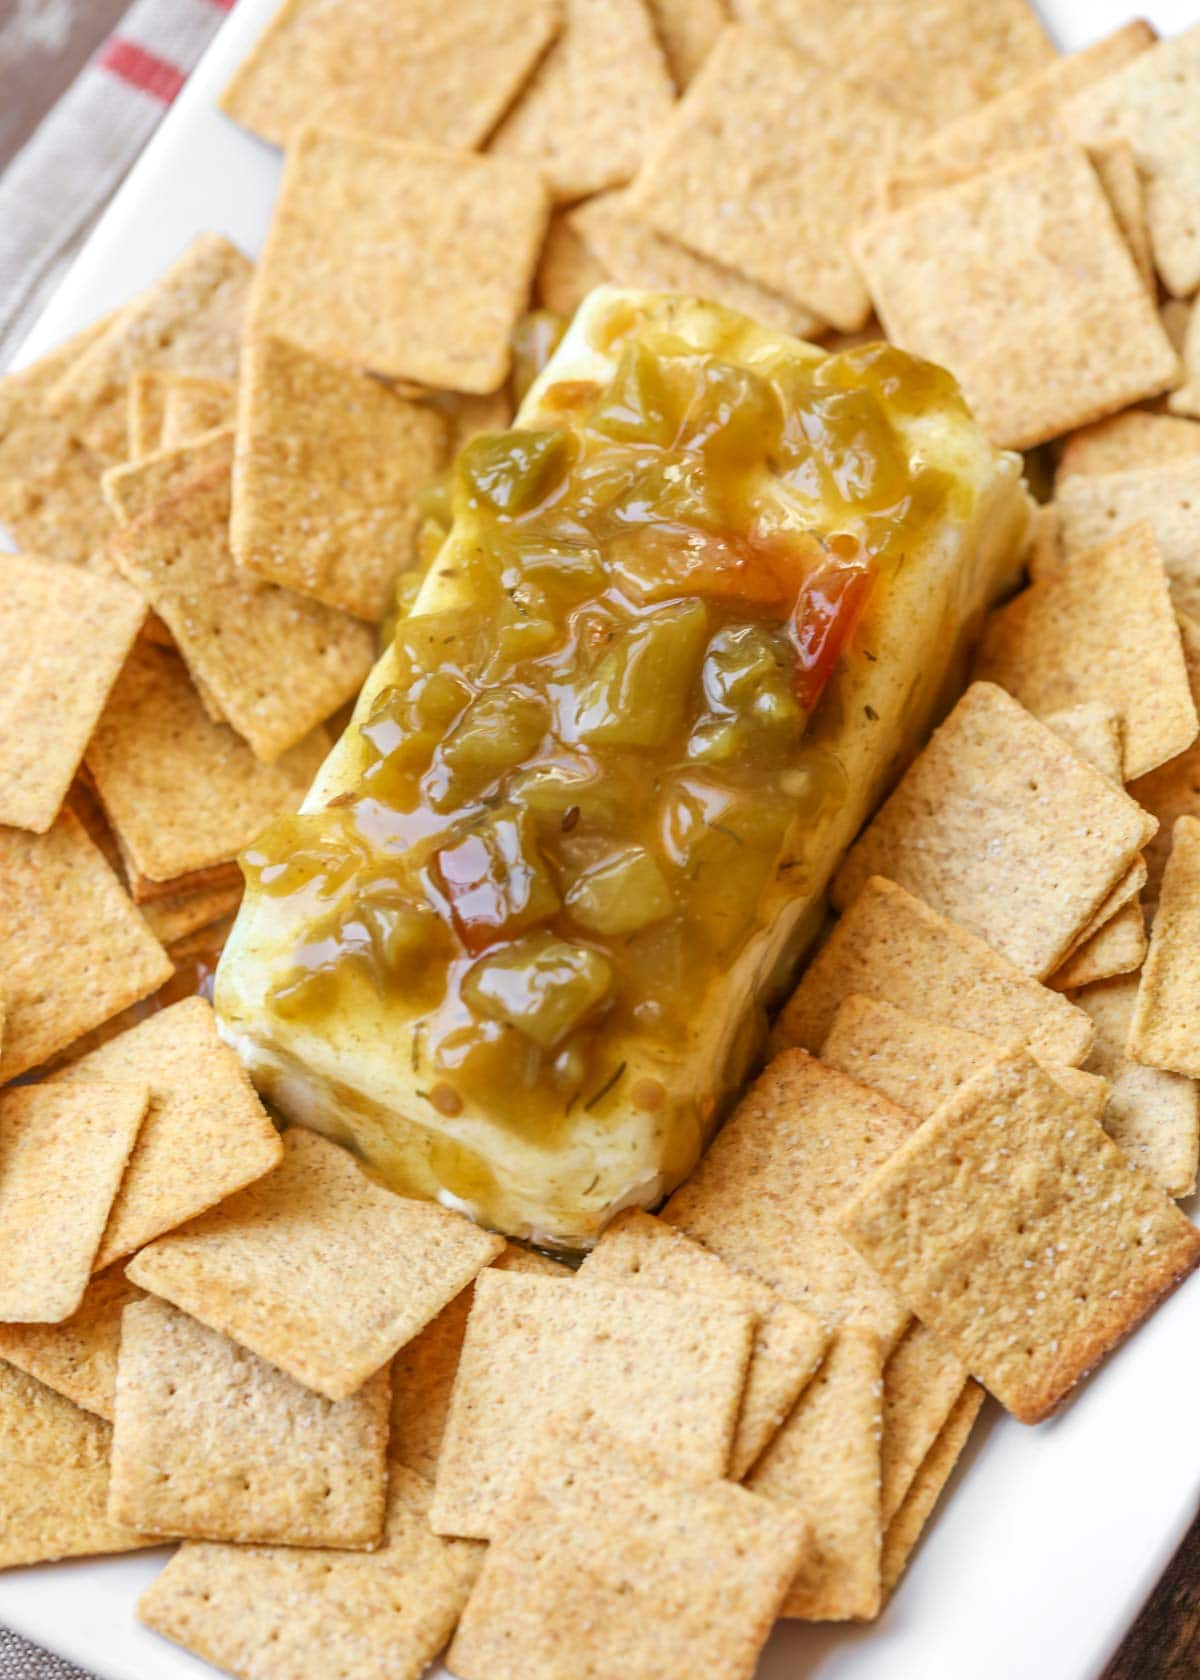 Green chili cream cheese dip with wheat thins